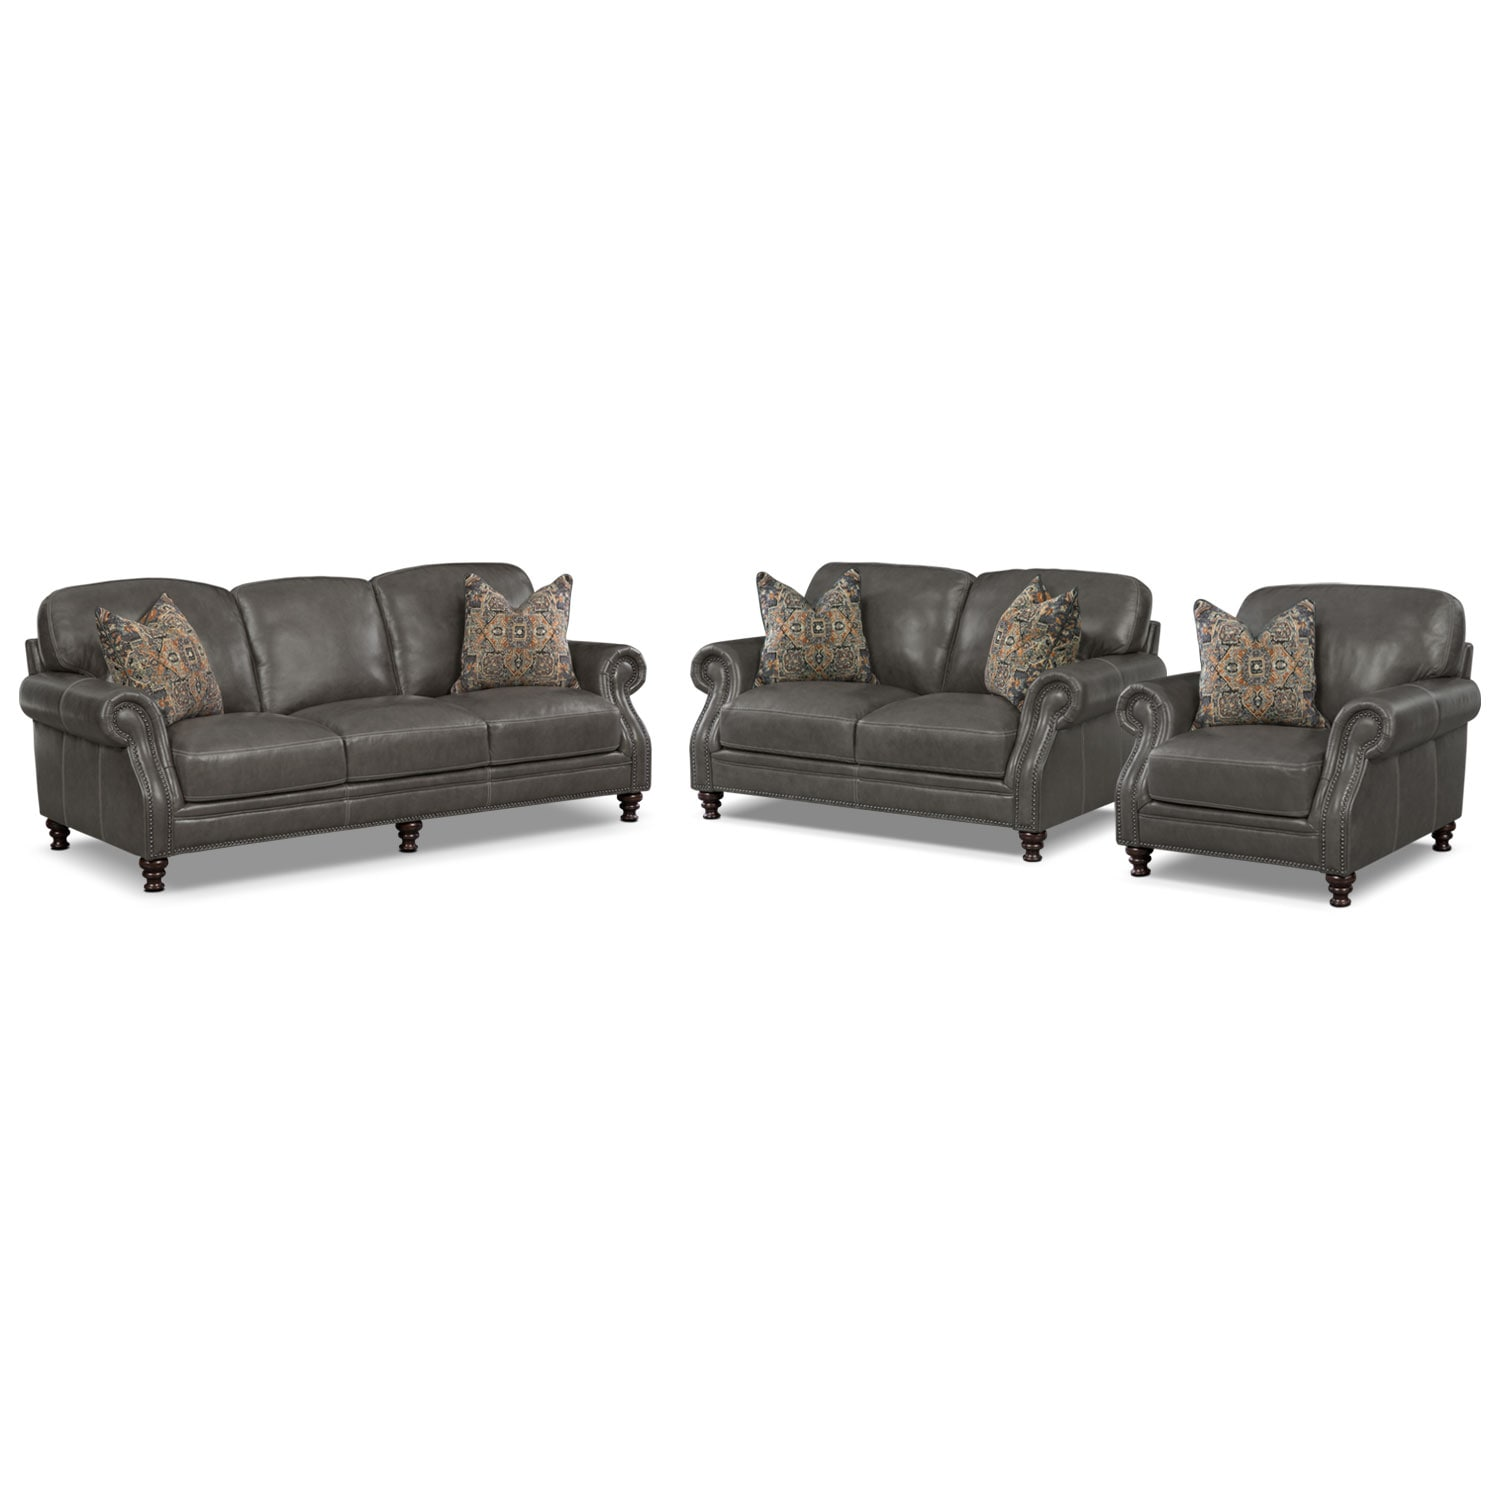 Living Room Furniture - Carrington Charcoal 3 Pc. Living Room